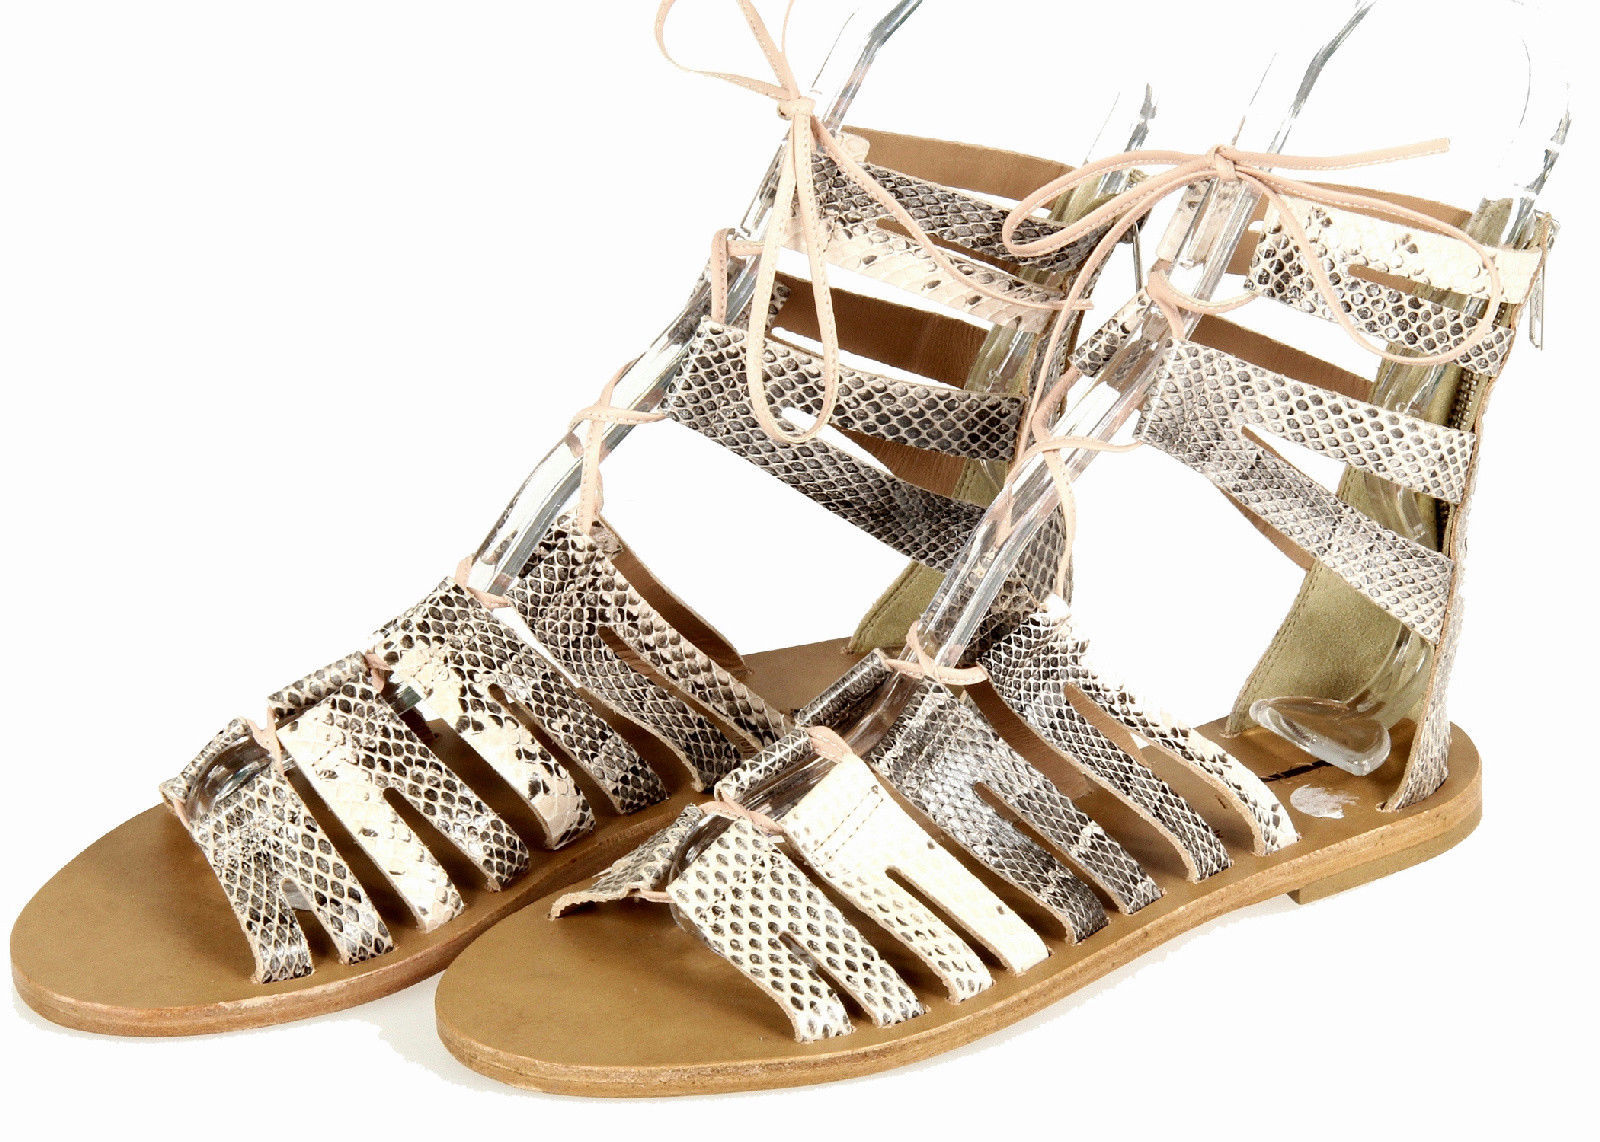 fe012f50b7dc J Crew Aztec Snakeskin Lace Up Gladiator Sandals 8 C4134 Womens Shoes Flats